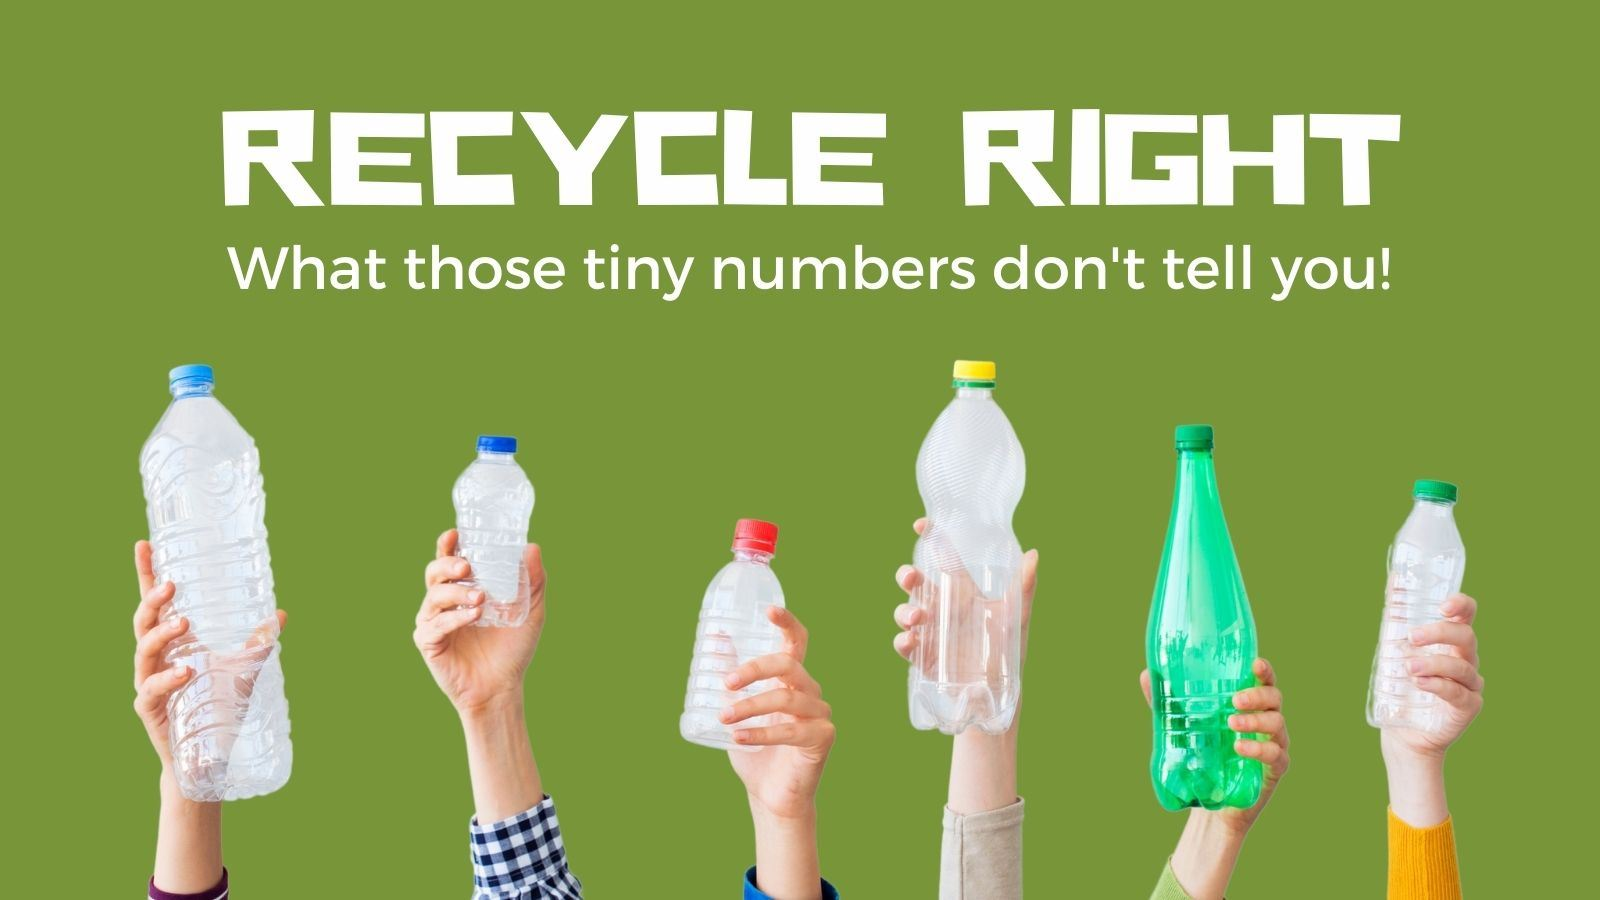 Recycle Right - hands holding plastic bottles in the air